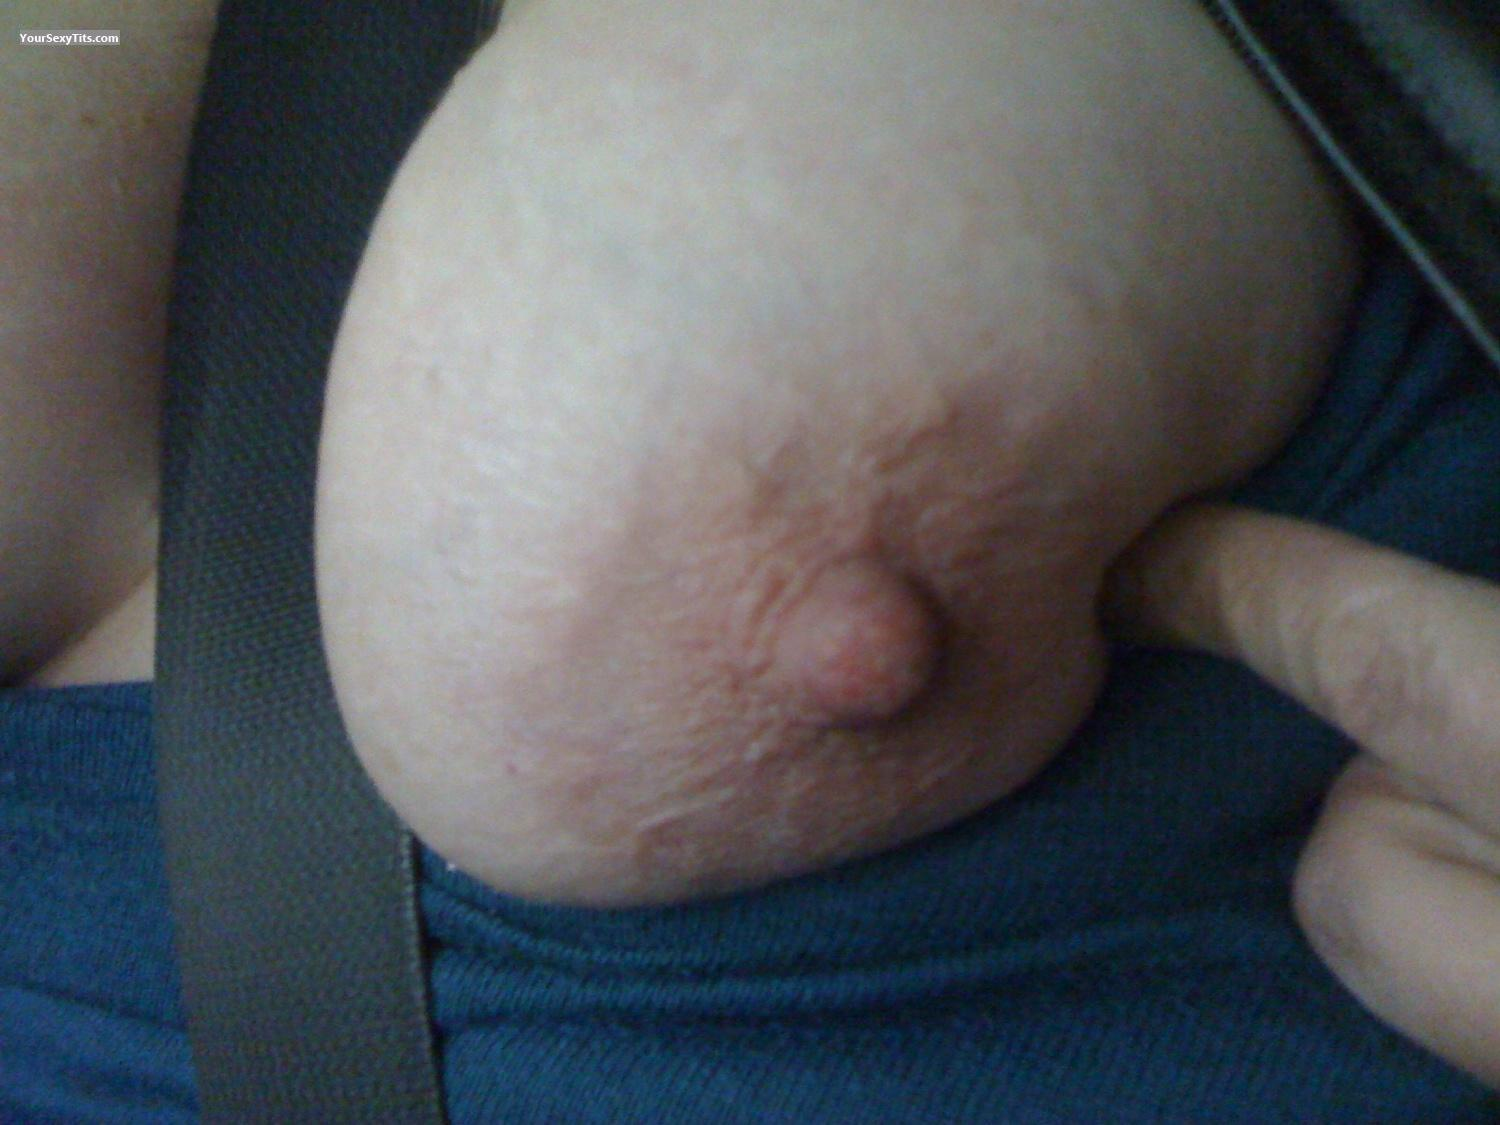 Tit Flash: My Medium Tits By IPhone (Selfie) - StL Cougar from United States